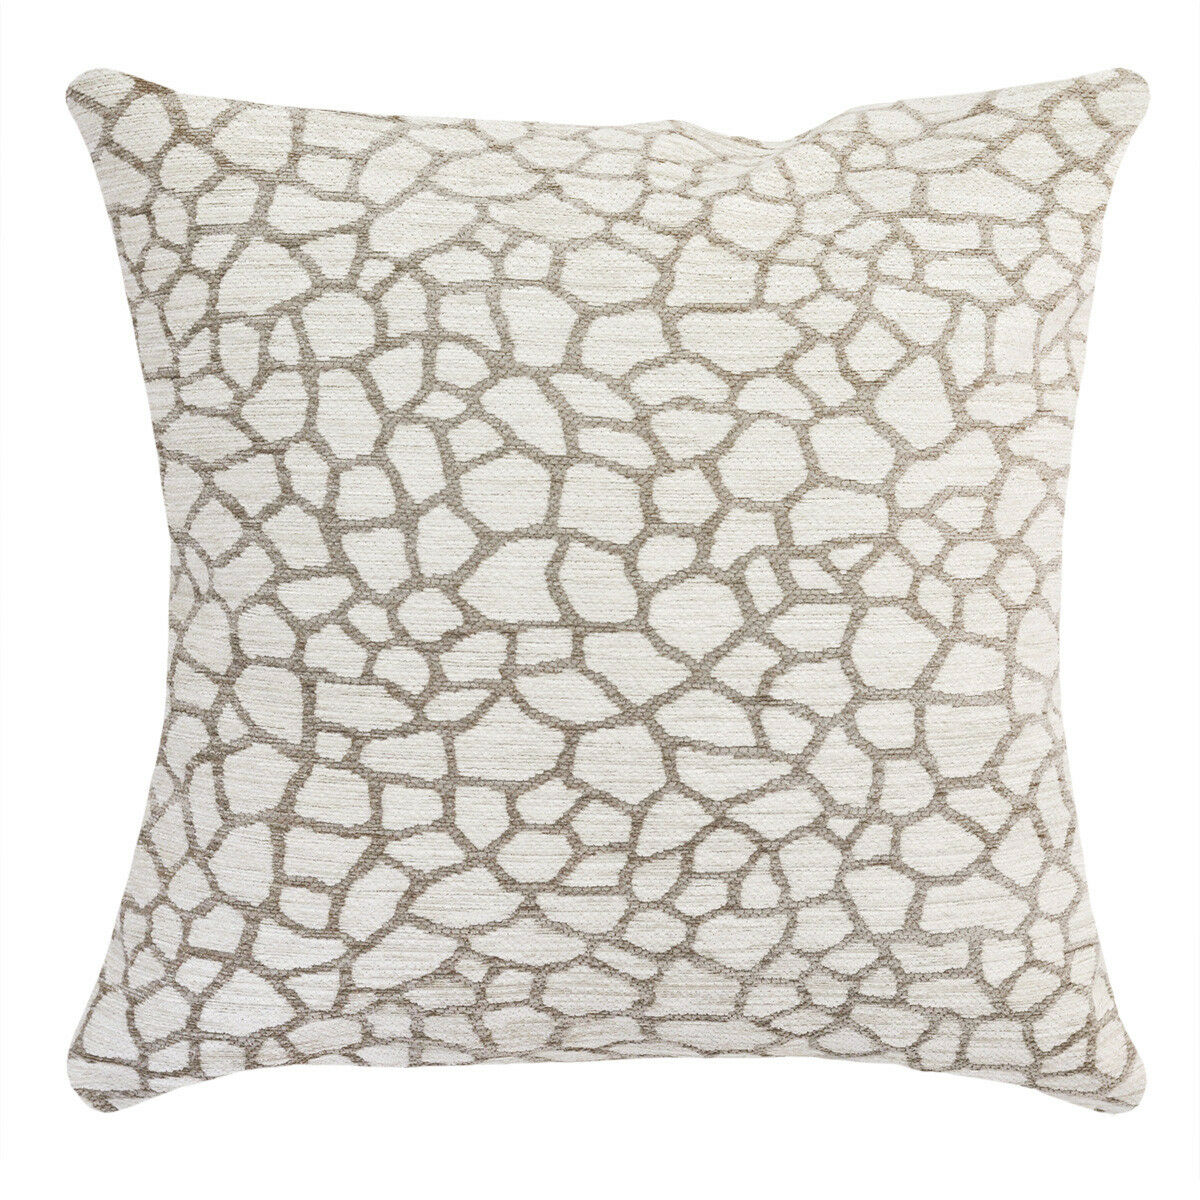 Ivory Solid Colour Double Sided Burlap Linen Look Pillow Cushion Cover 45 cm